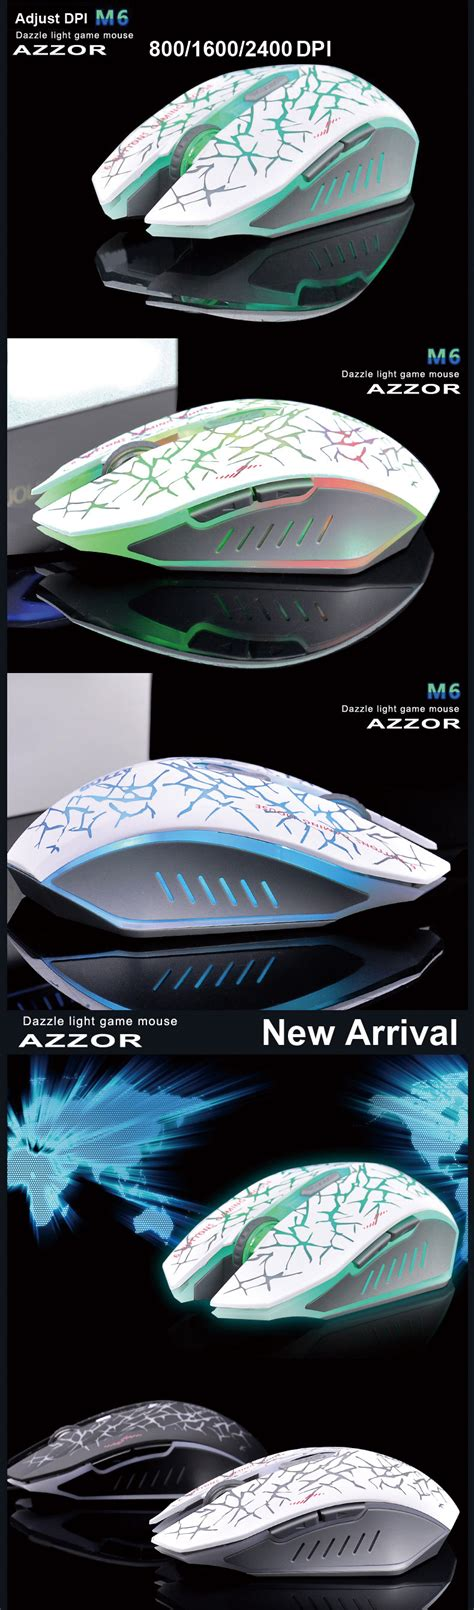 Mouse Gaming Gaming Mouse Azzor Wireless Rechargeable Usb 2400 2 4ghz Wireless Azzor M6 Rechargeable Silent Ergonomic